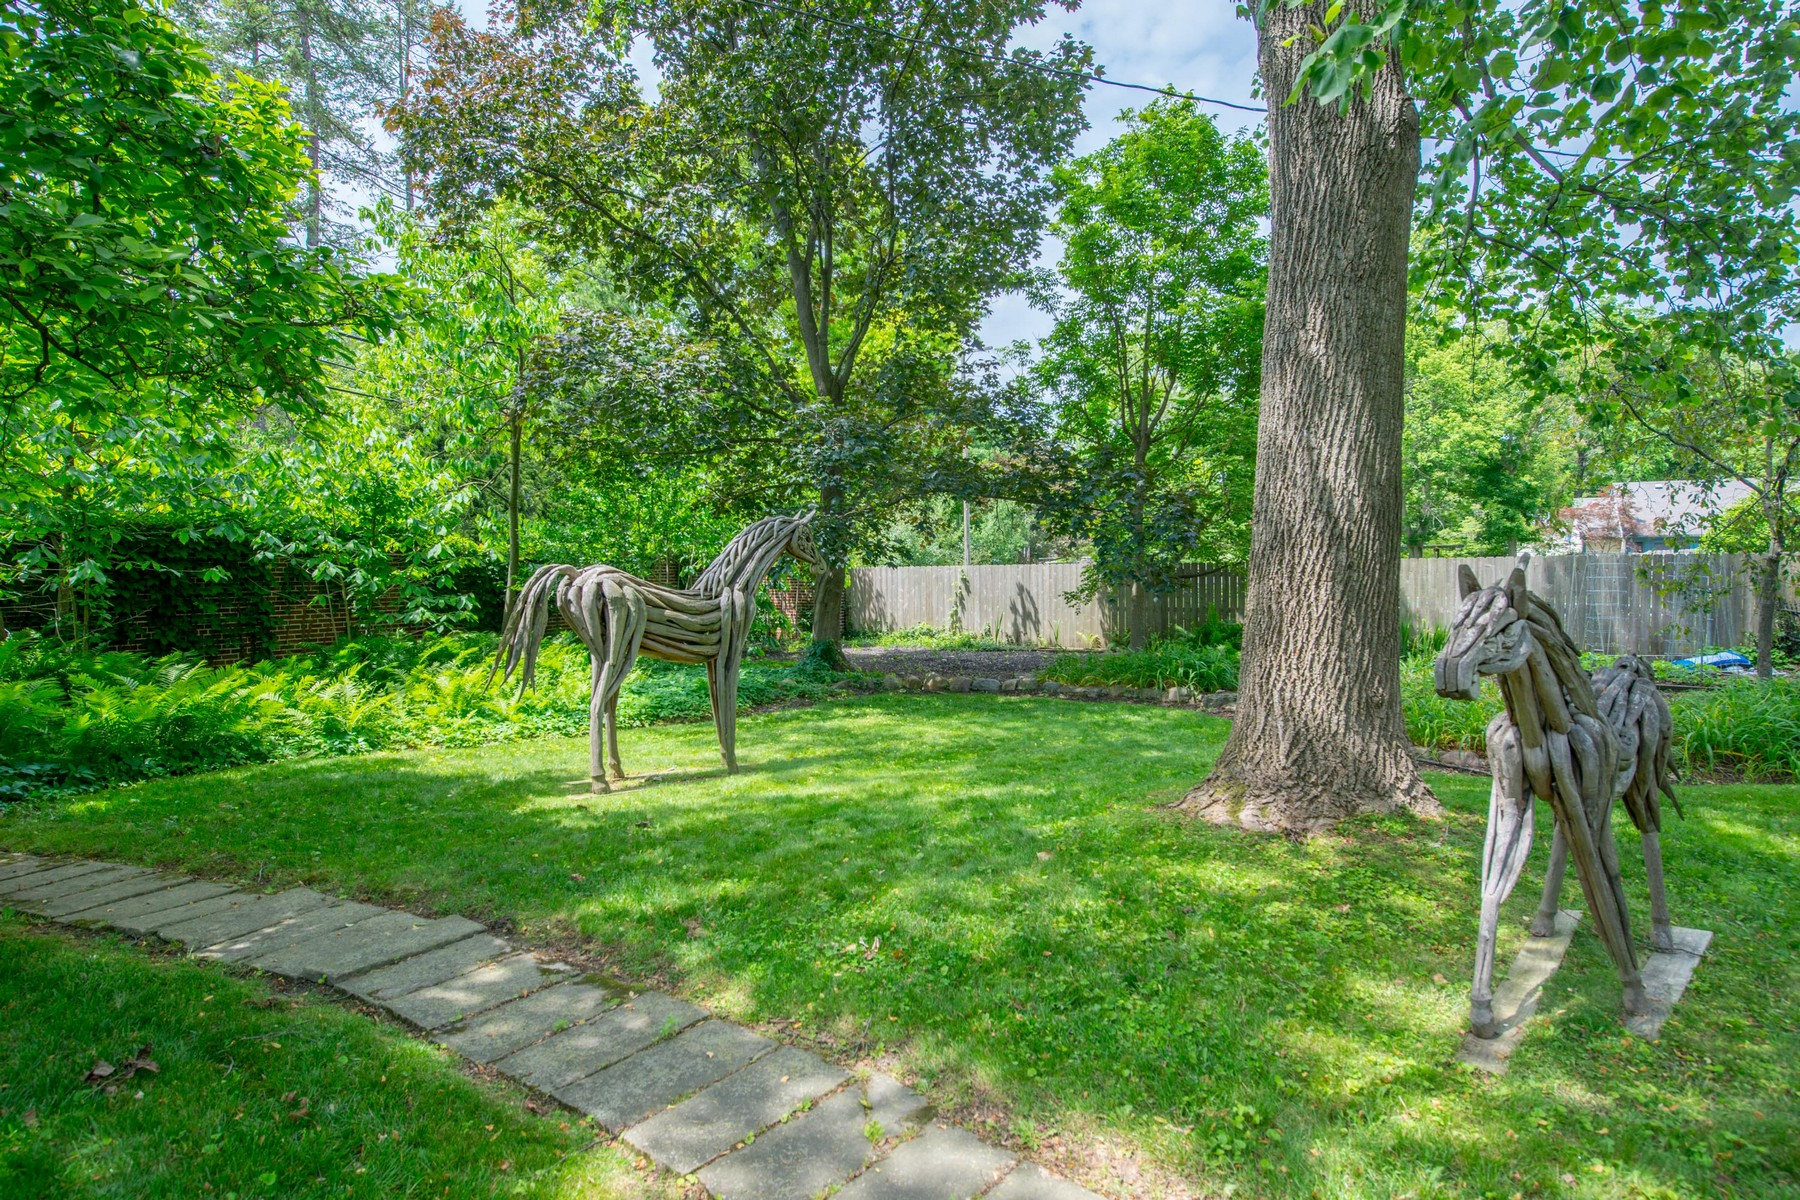 Additional photo for property listing at 151 S Parkview Ave  Bexley, Ohio 43209 United States